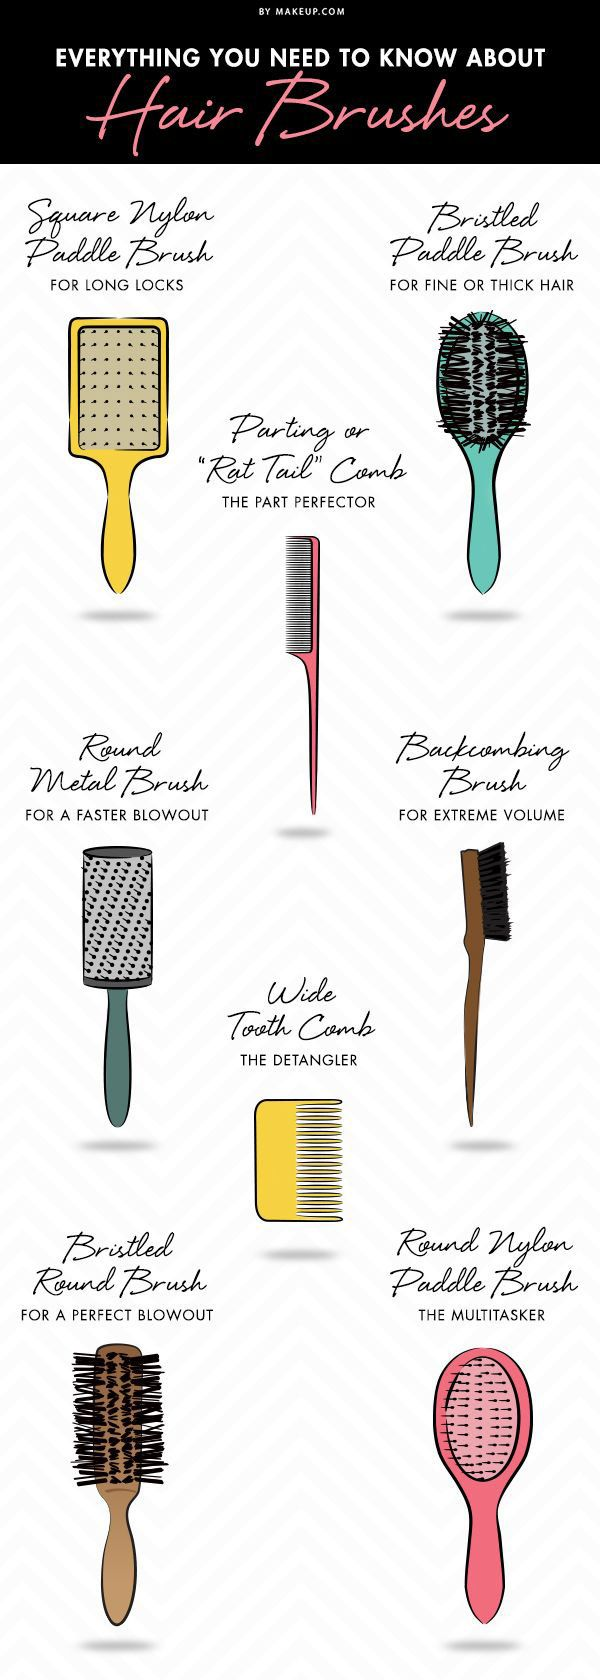 16 Tips and Tricks On How To Use Hair Brushes The Right Way